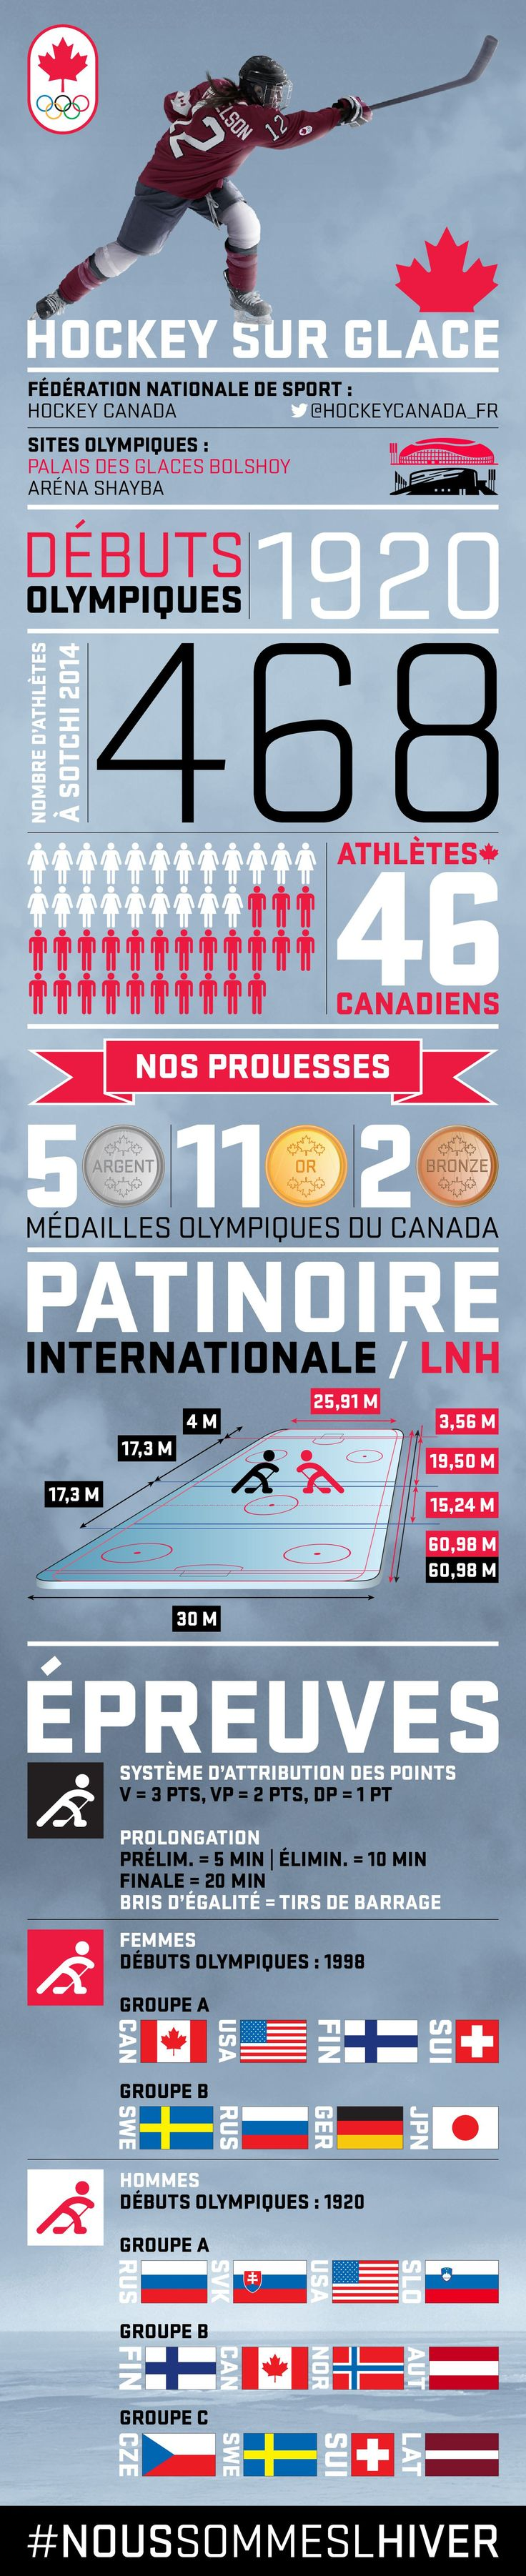 infographie_Hockey_sur_glace_FR